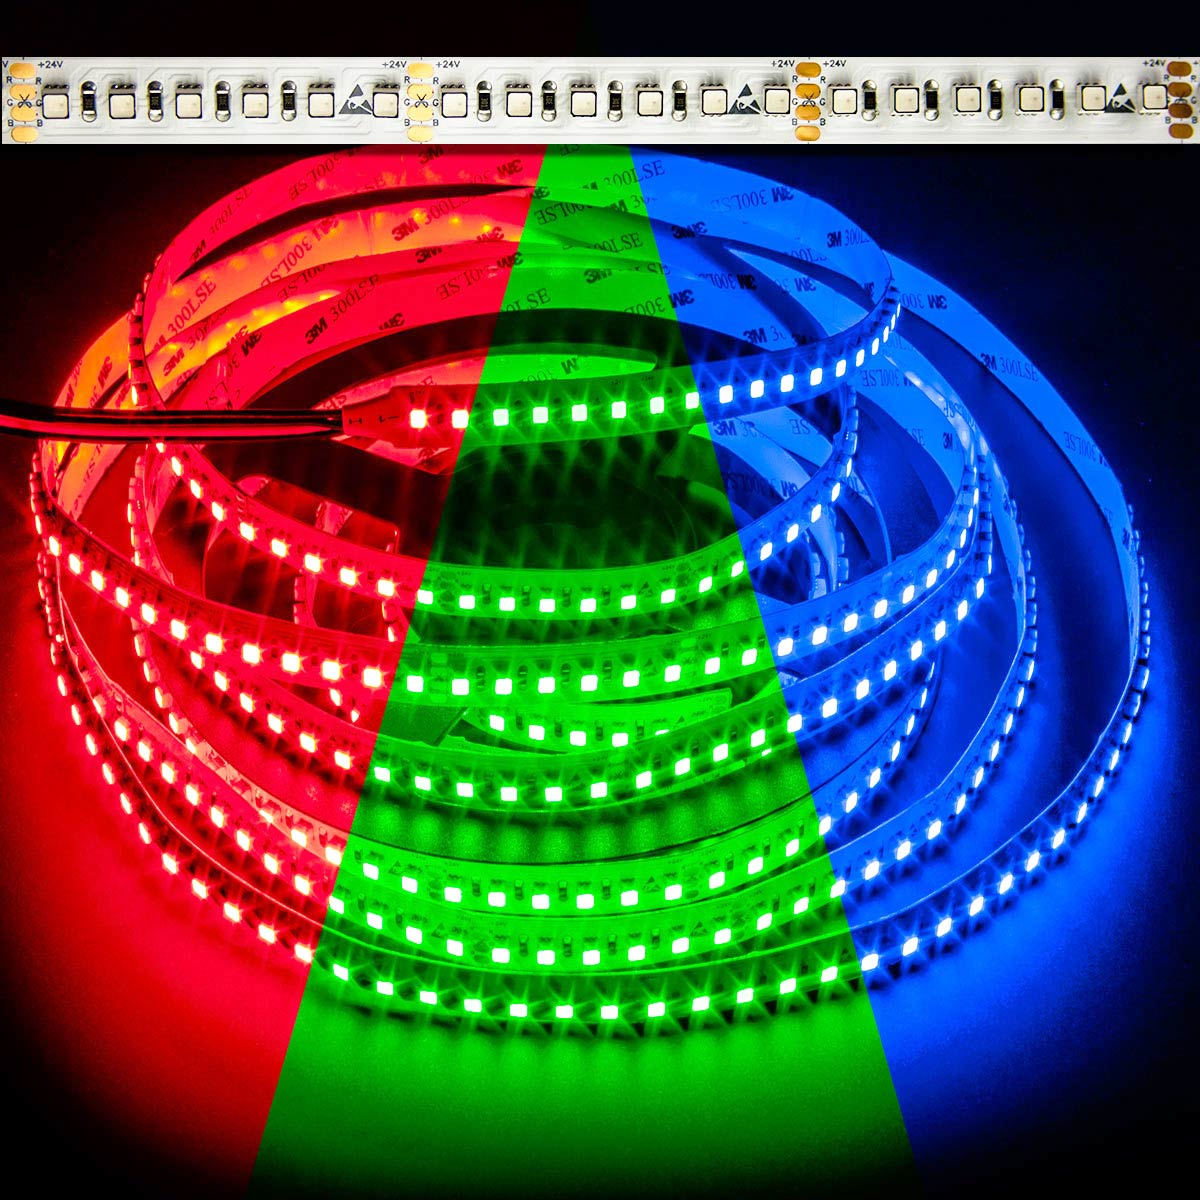 Waterproof Color Changing RGB Daylight White Quadchip 5050 72W LED Strip likewise Copper Clad Laminated Sheet Fr4 199922 1325899 also Types Of Pcb Designing Layers furthermore China CNC Router Kit For PCB Machine From Shenzhen moreover 130768866804. on double sided printed circuit board 7